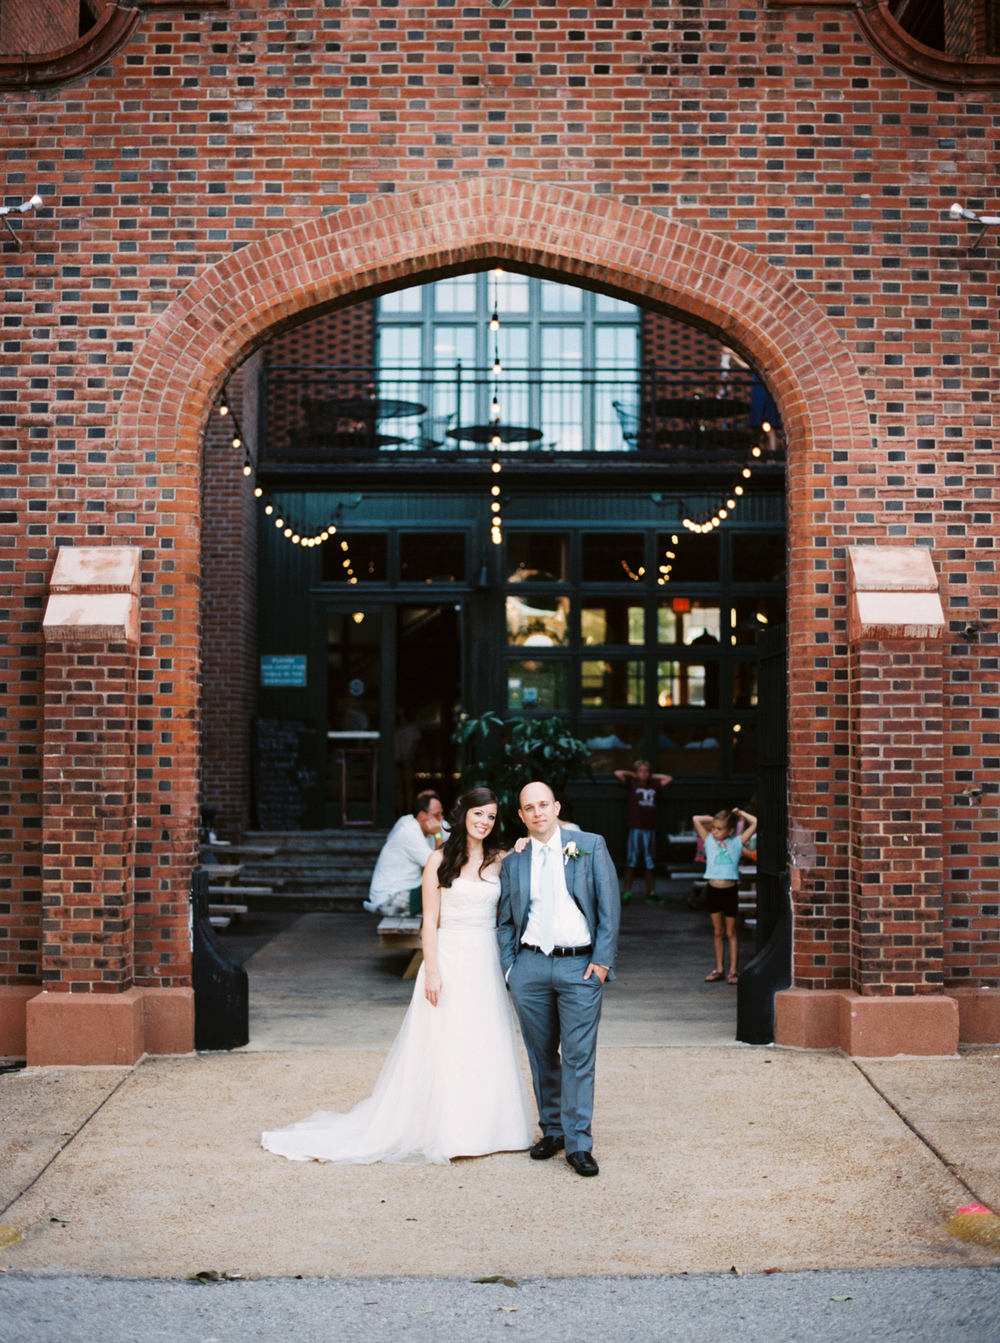 Oldani-Photography-St-Louis-Film-Photographer-Schlafly-Tap-Room-Wedding-Reception8603_01.jpg